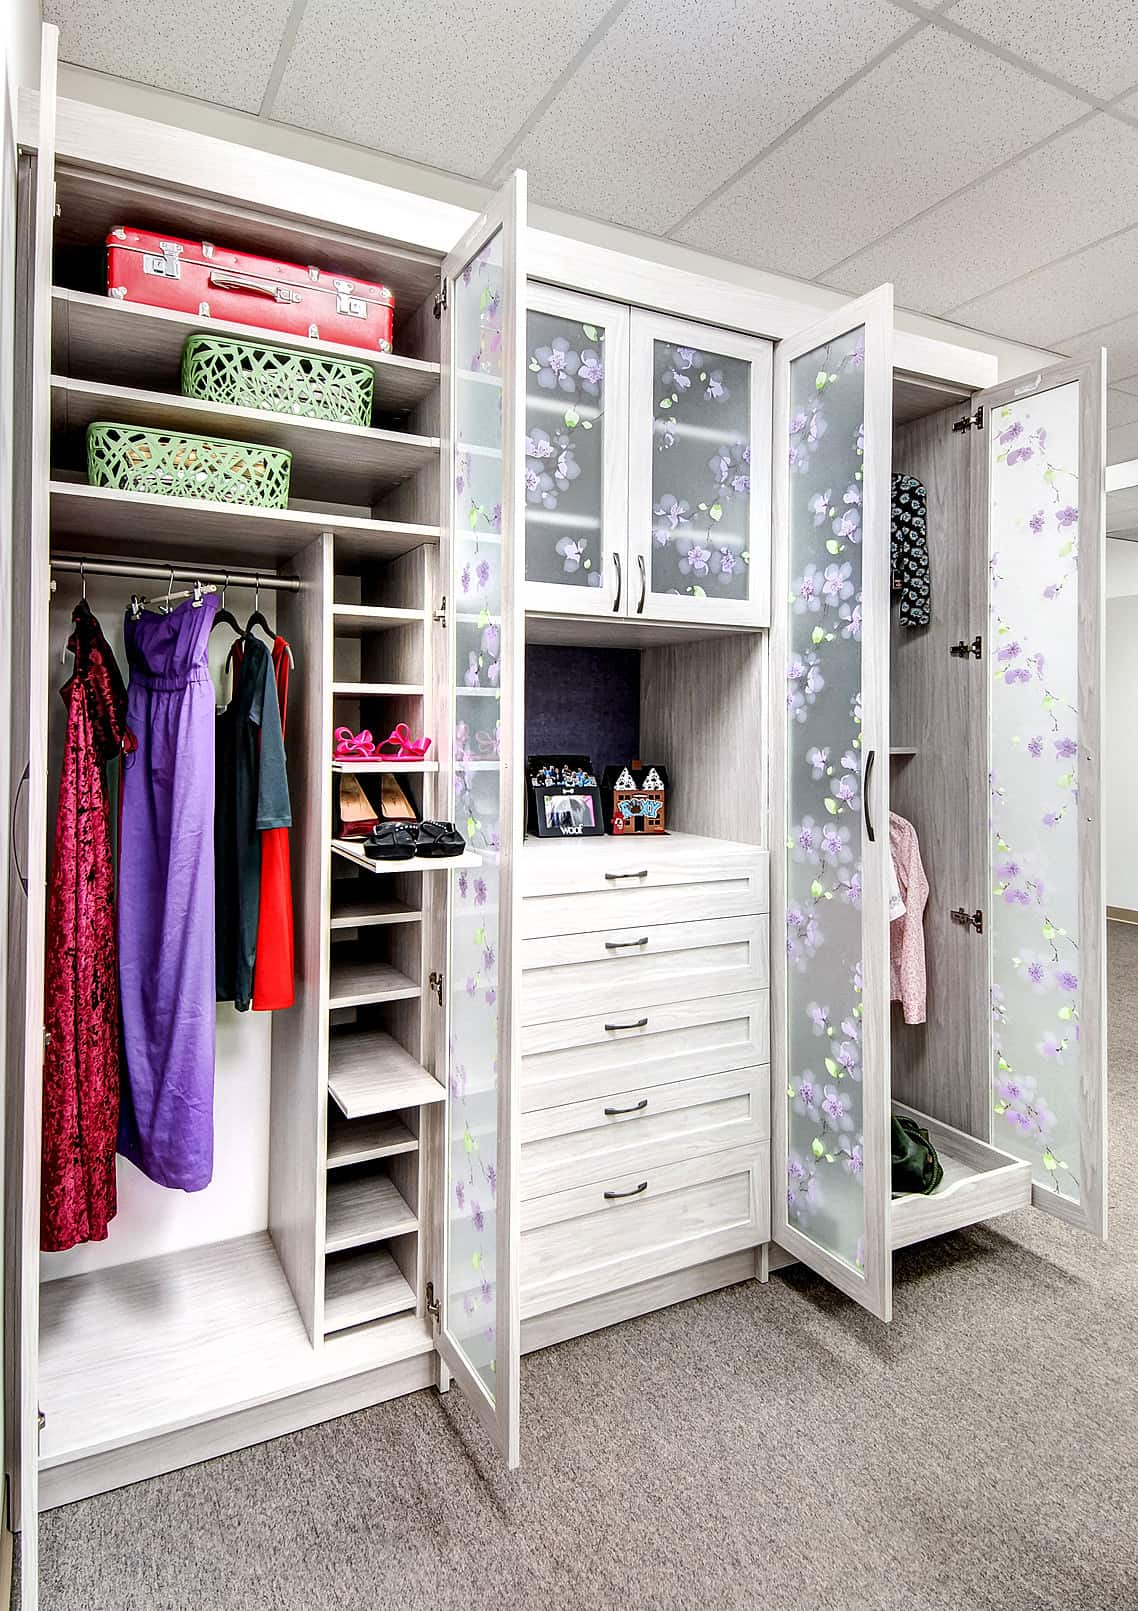 Reach-in closet with decorative glass door panels and a built-in desk.